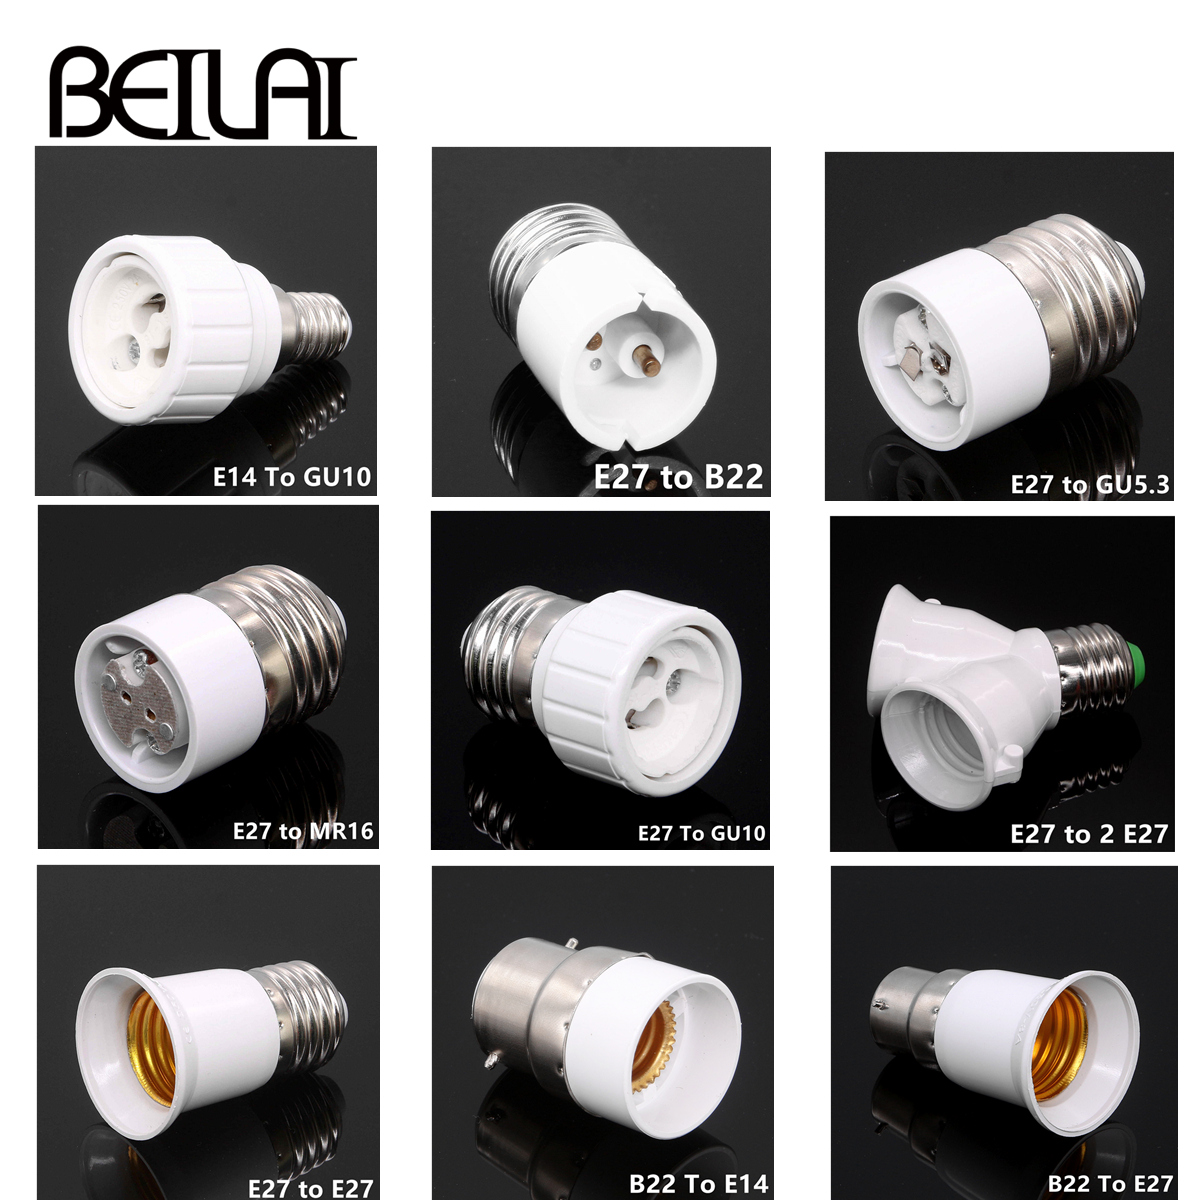 RGB LED Bulbs E14 TO E27 B22 GU10 Converter For LED Light Lamp Adapter Conversion Socket Material Fireproof Adapter Lamp Holder